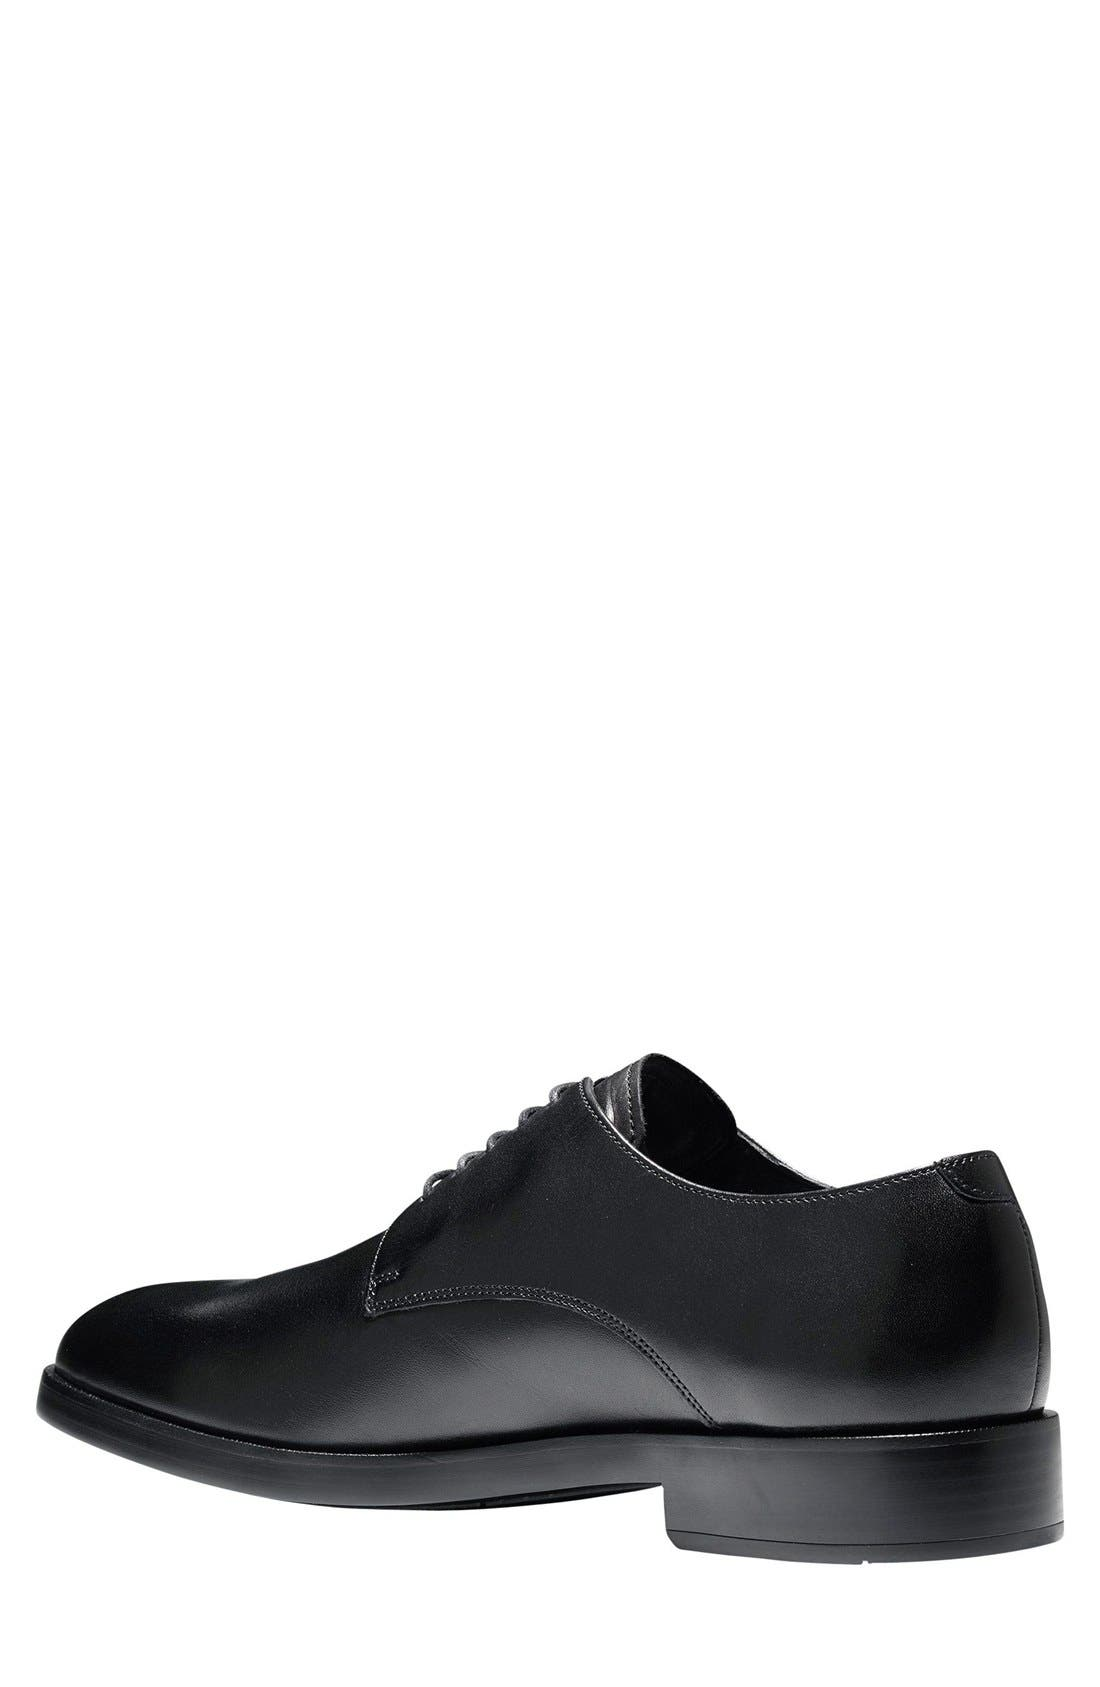 'Harrison Grand' Plain Toe Derby,                             Alternate thumbnail 9, color,                             BLACK